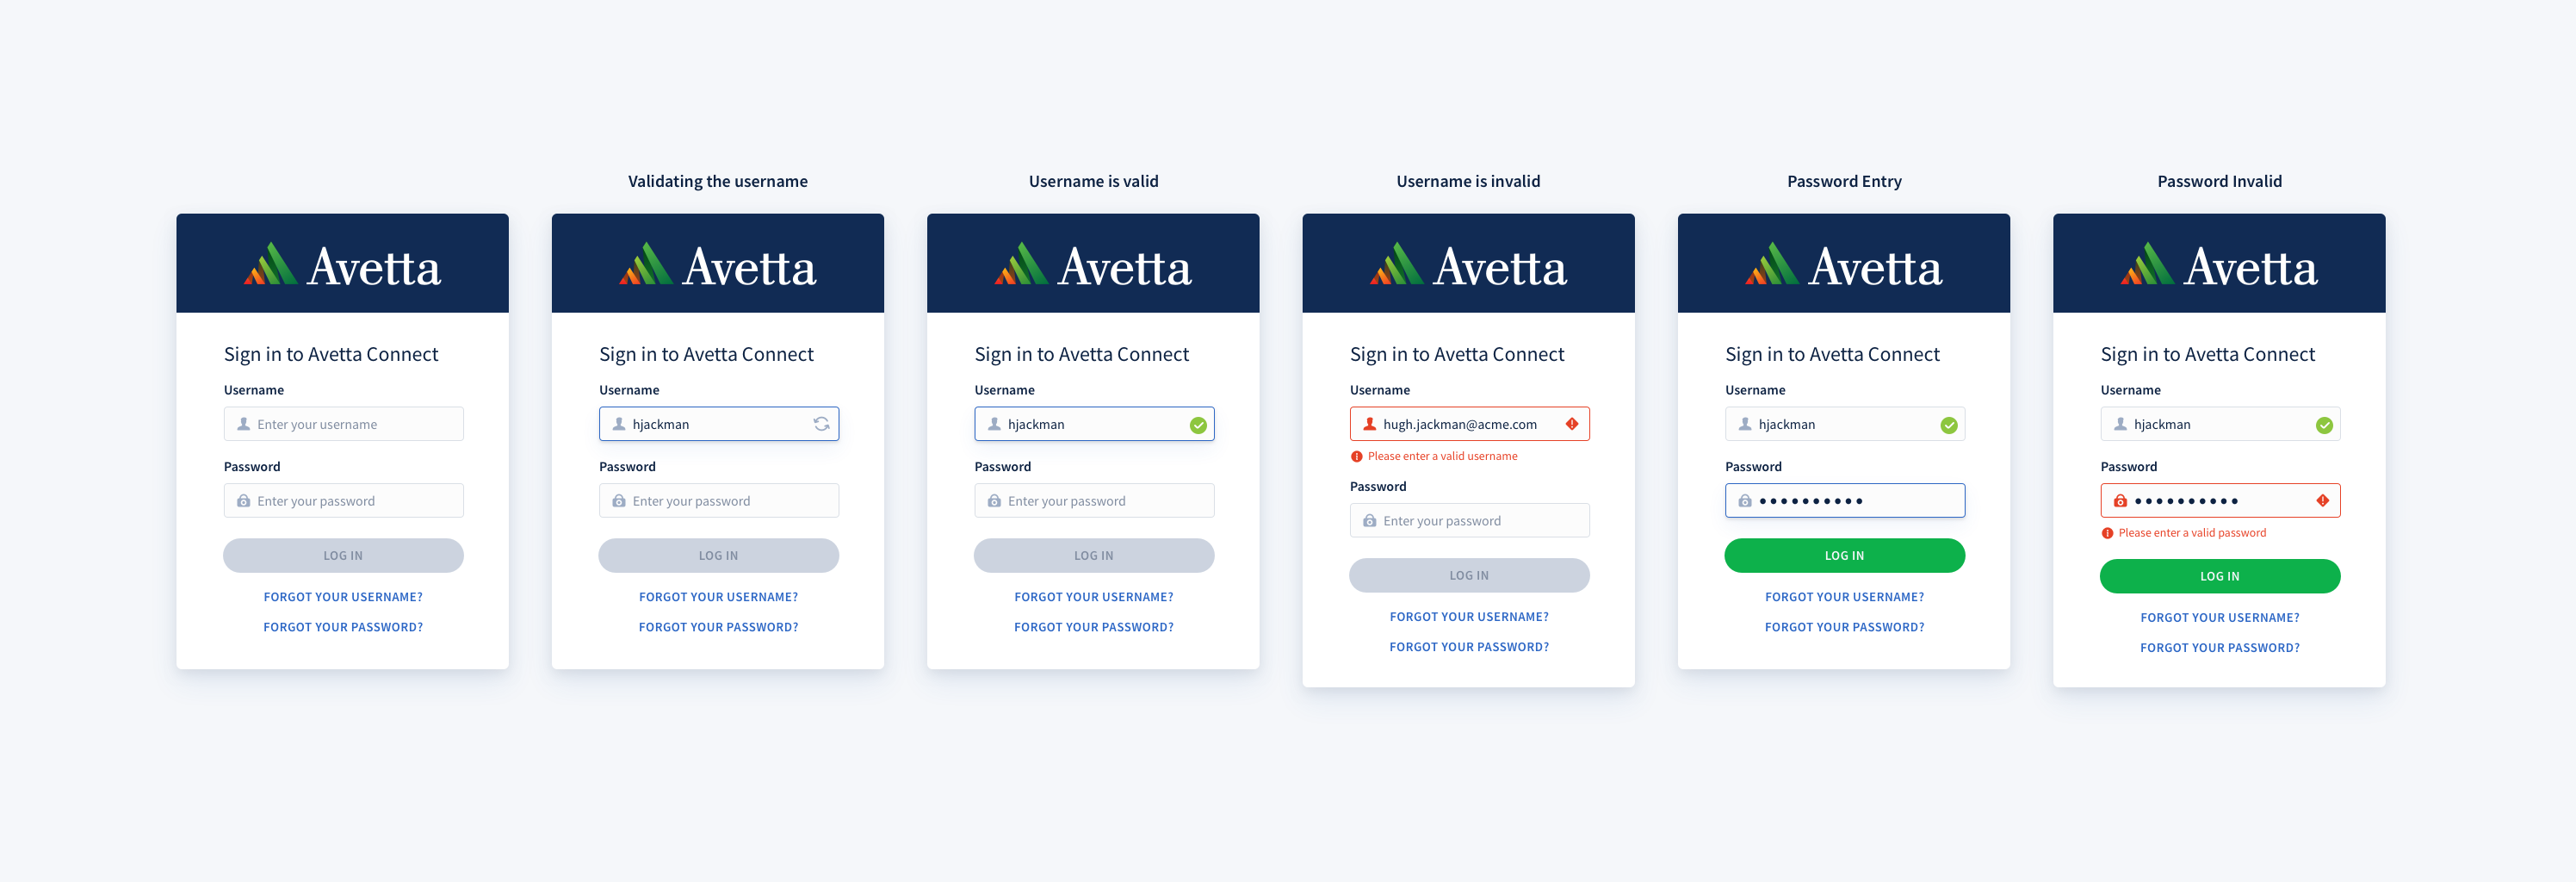 Workflow with validation for user login - Avetta | Chris